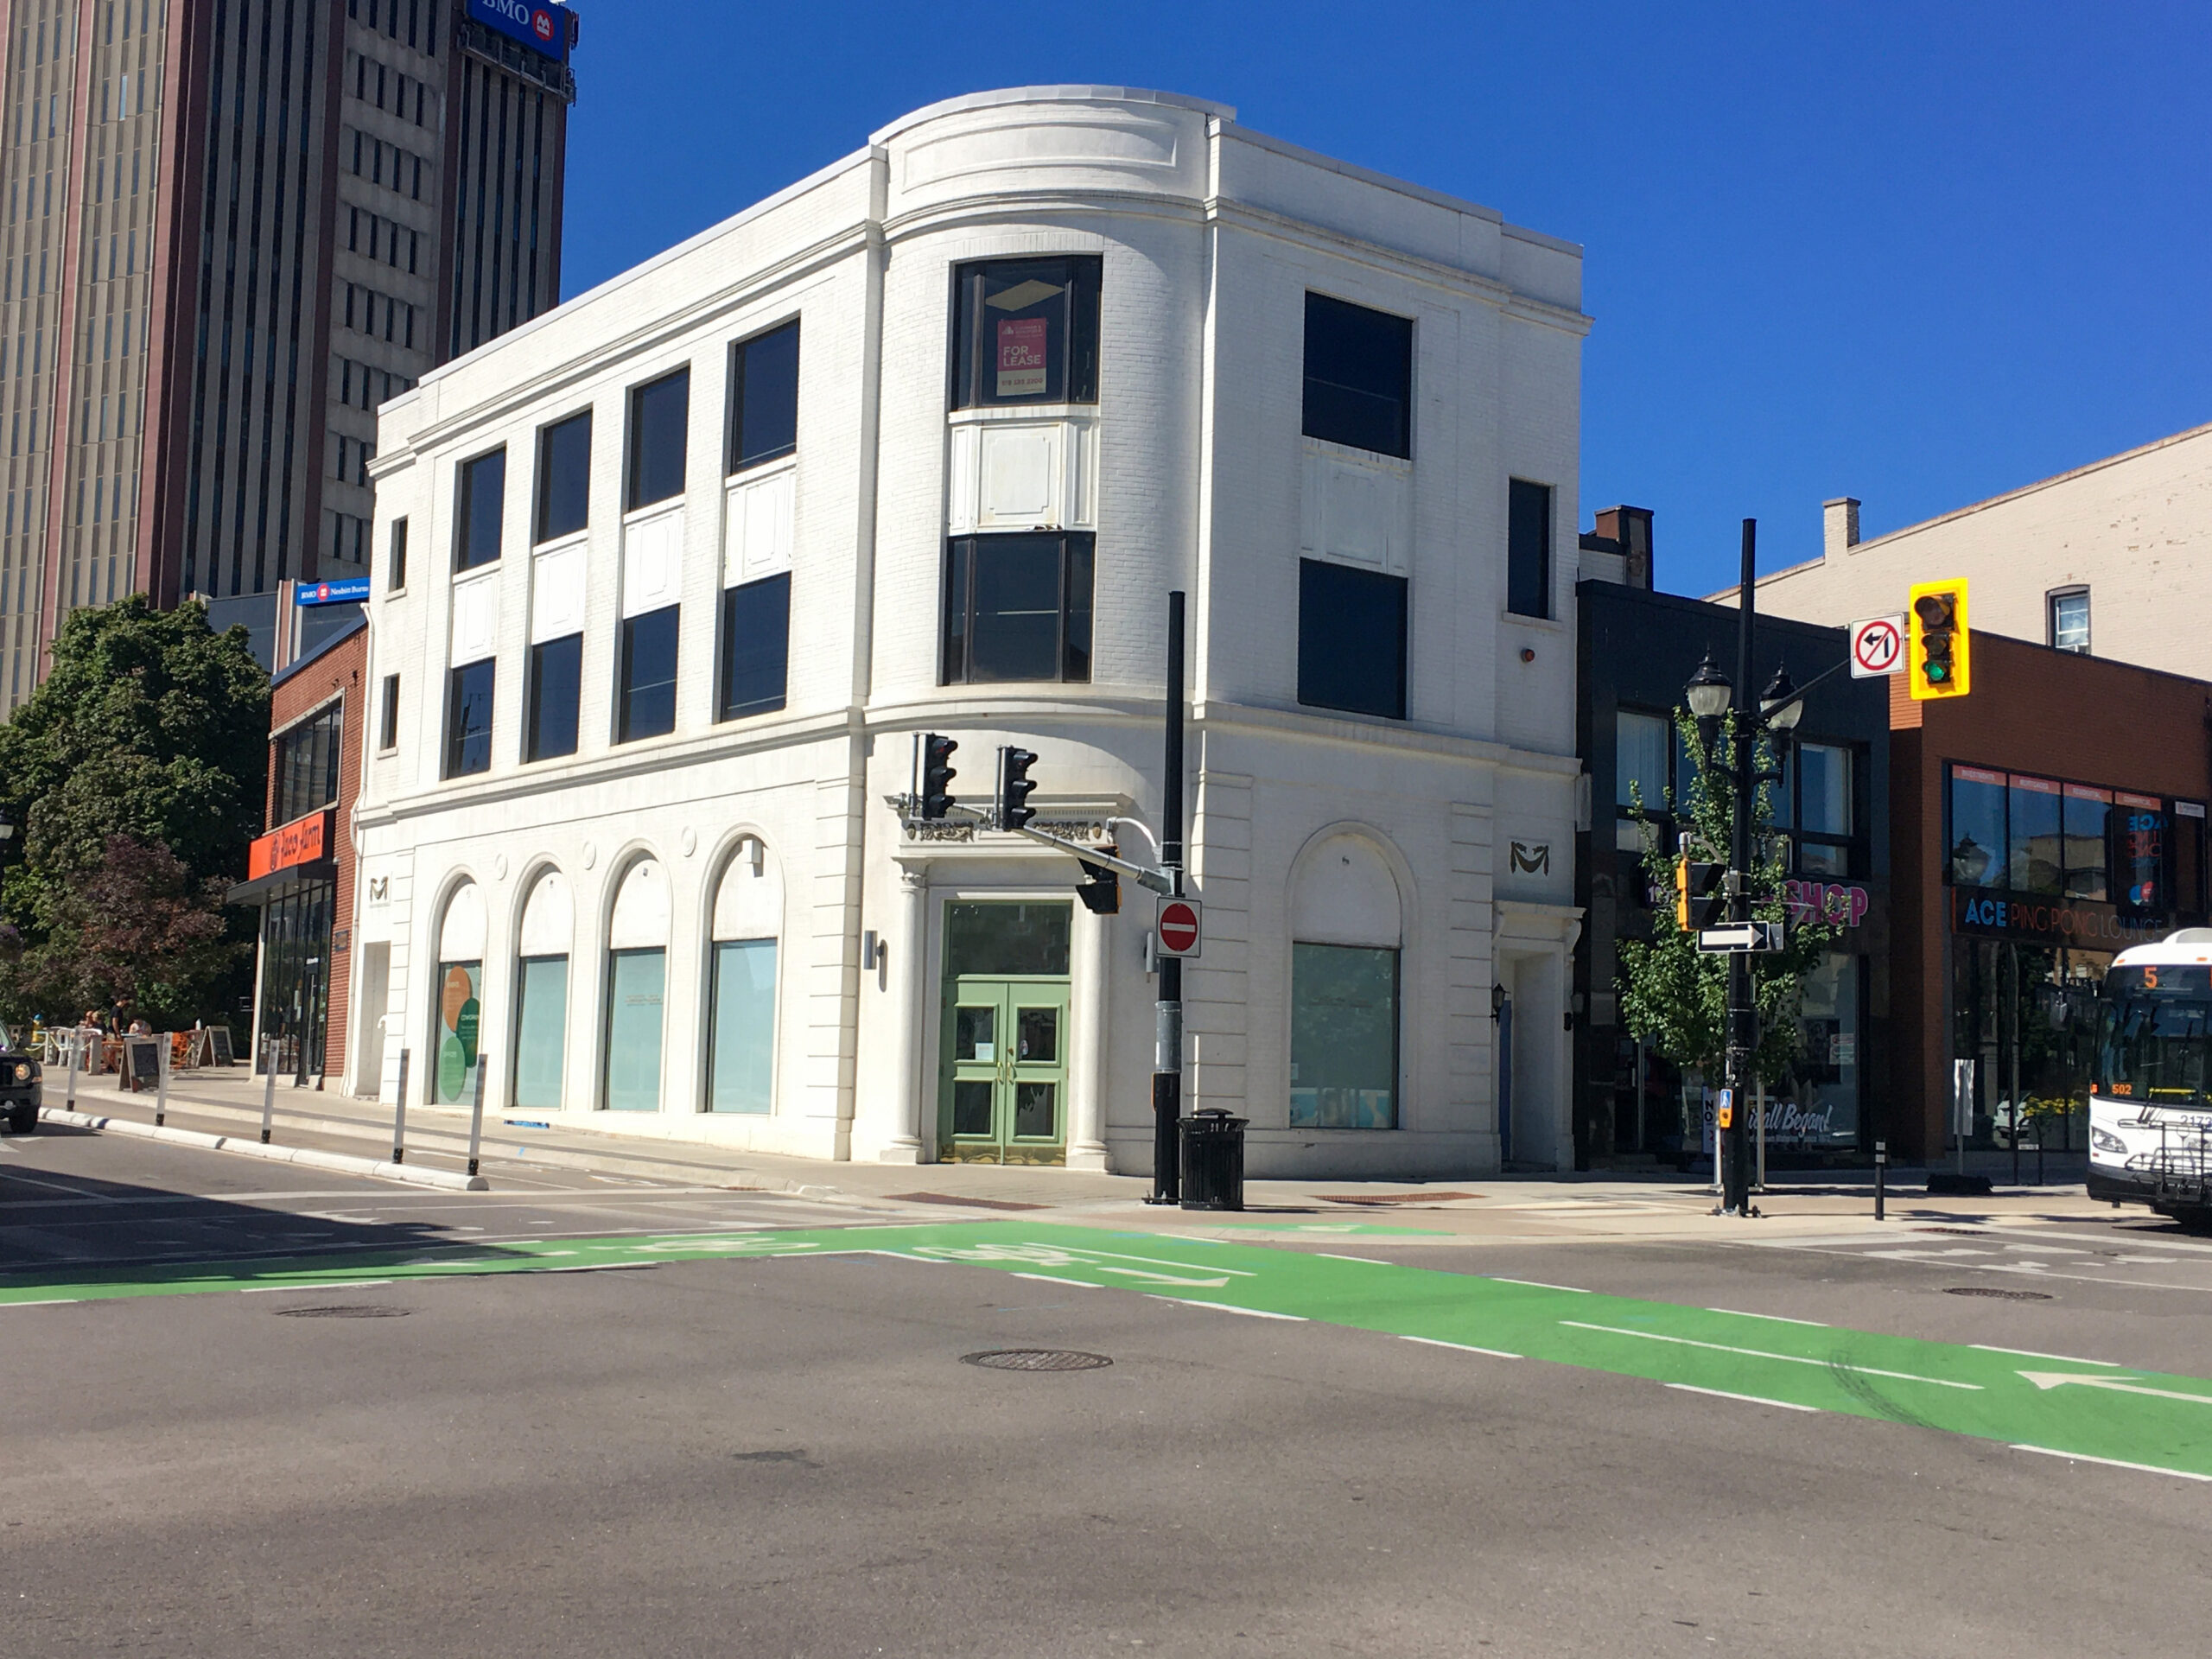 1 King St N, (Multiple Units), Waterloo | Single Offices for Lease